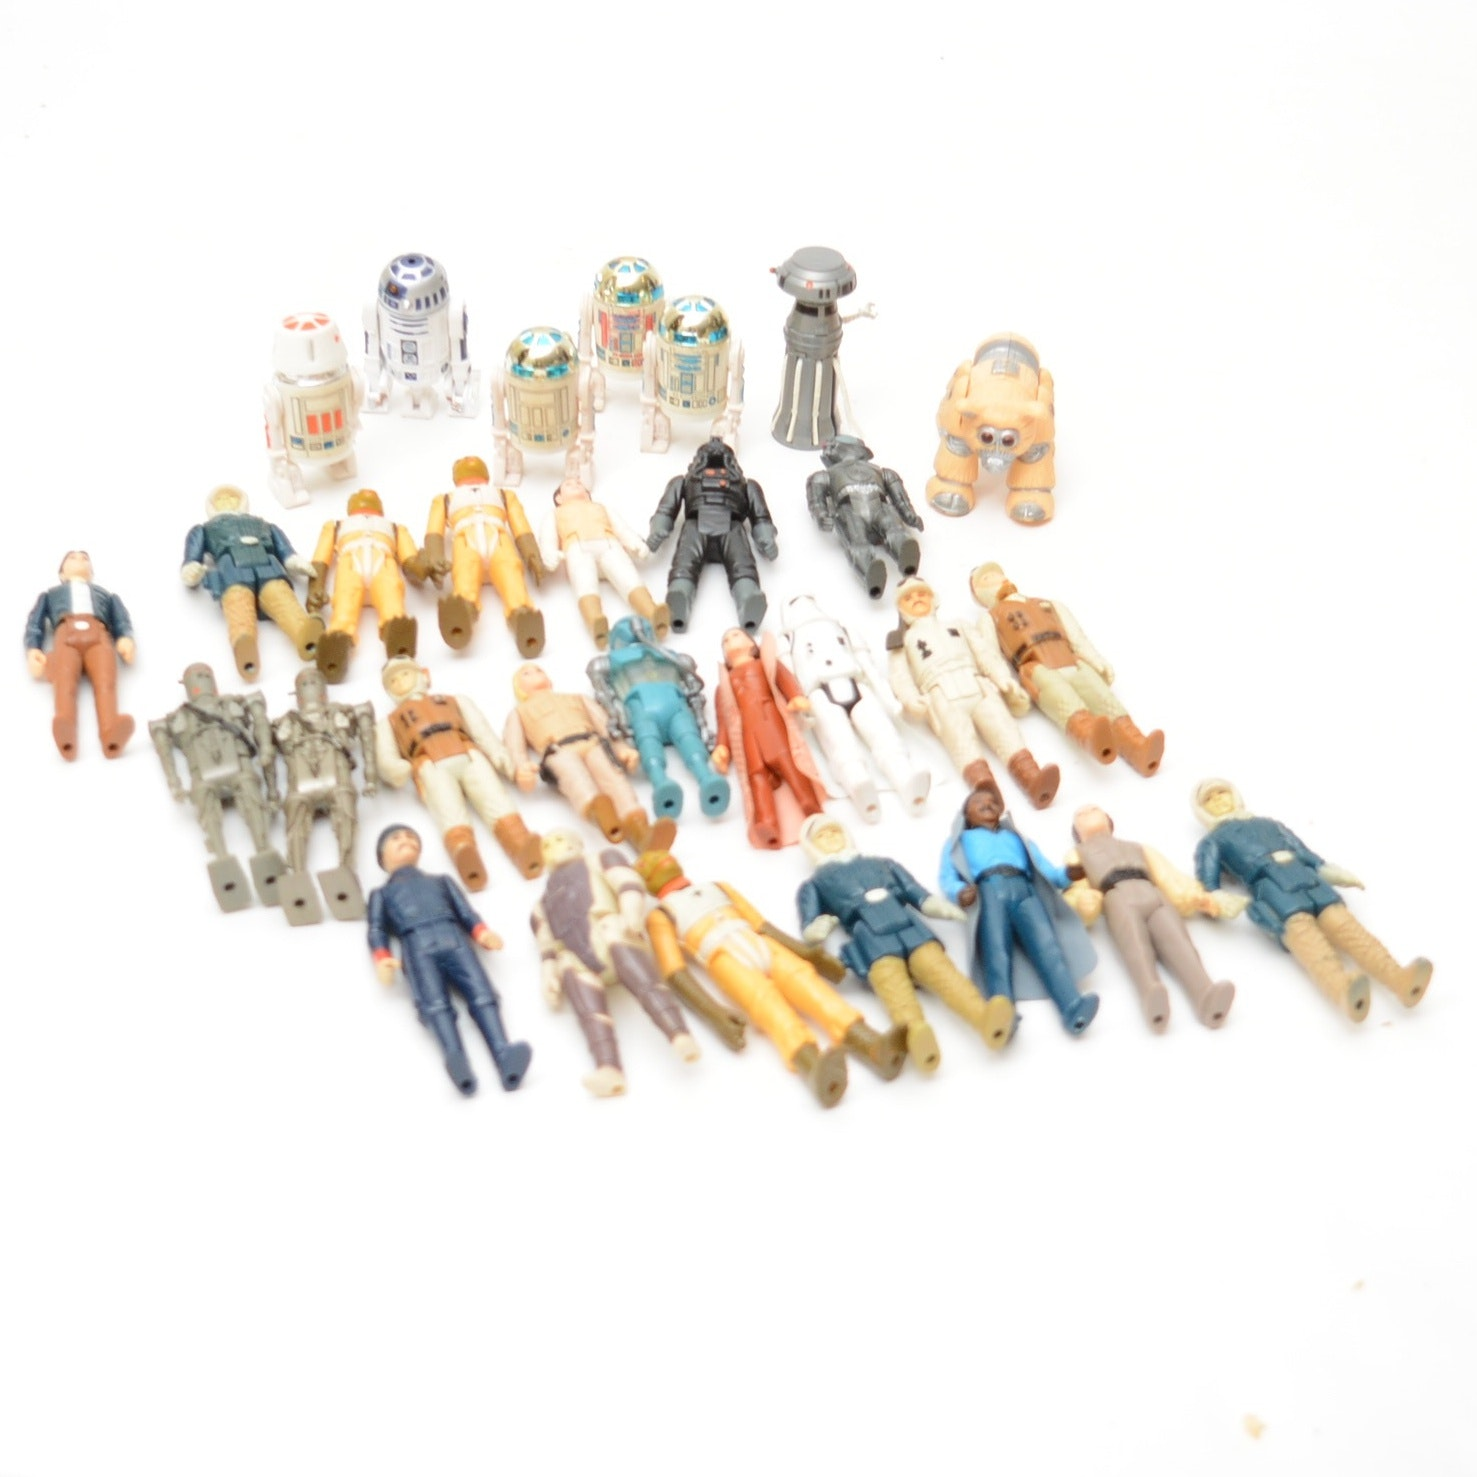 L.F.L. Star Wars Action Figurines Circa 1980s